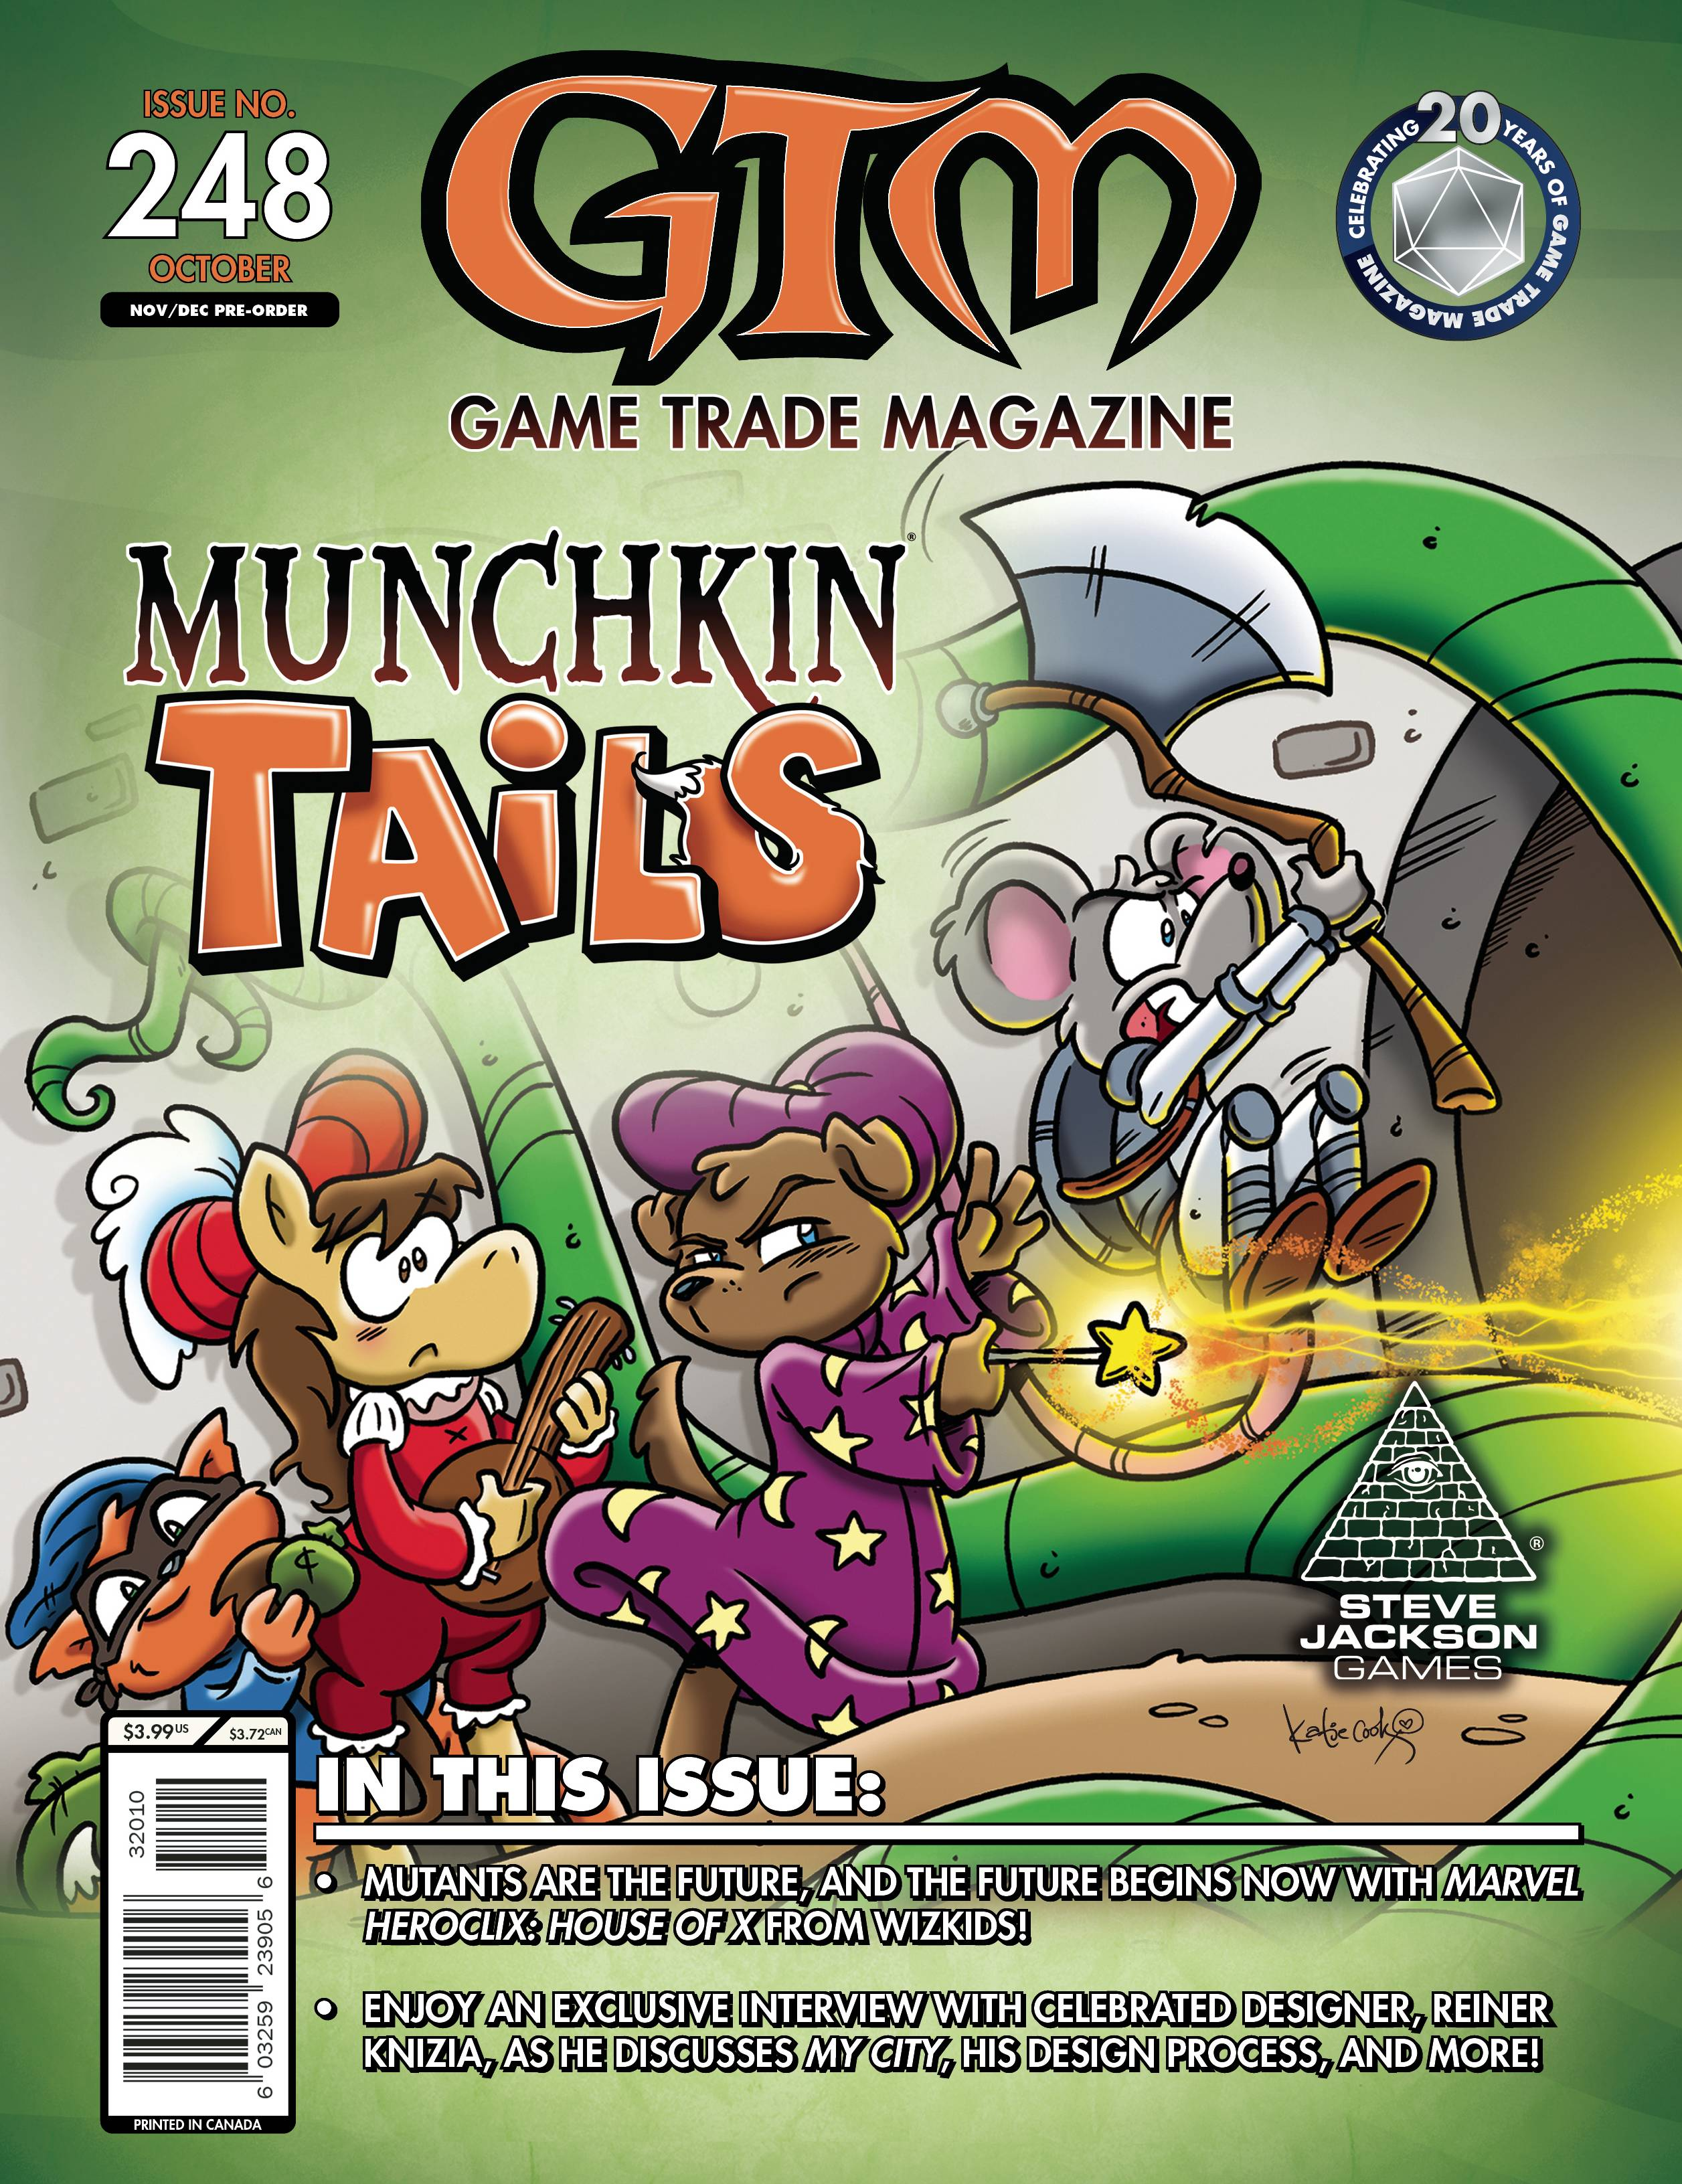 GAME TRADE MAGAZINE EXTRAS #248